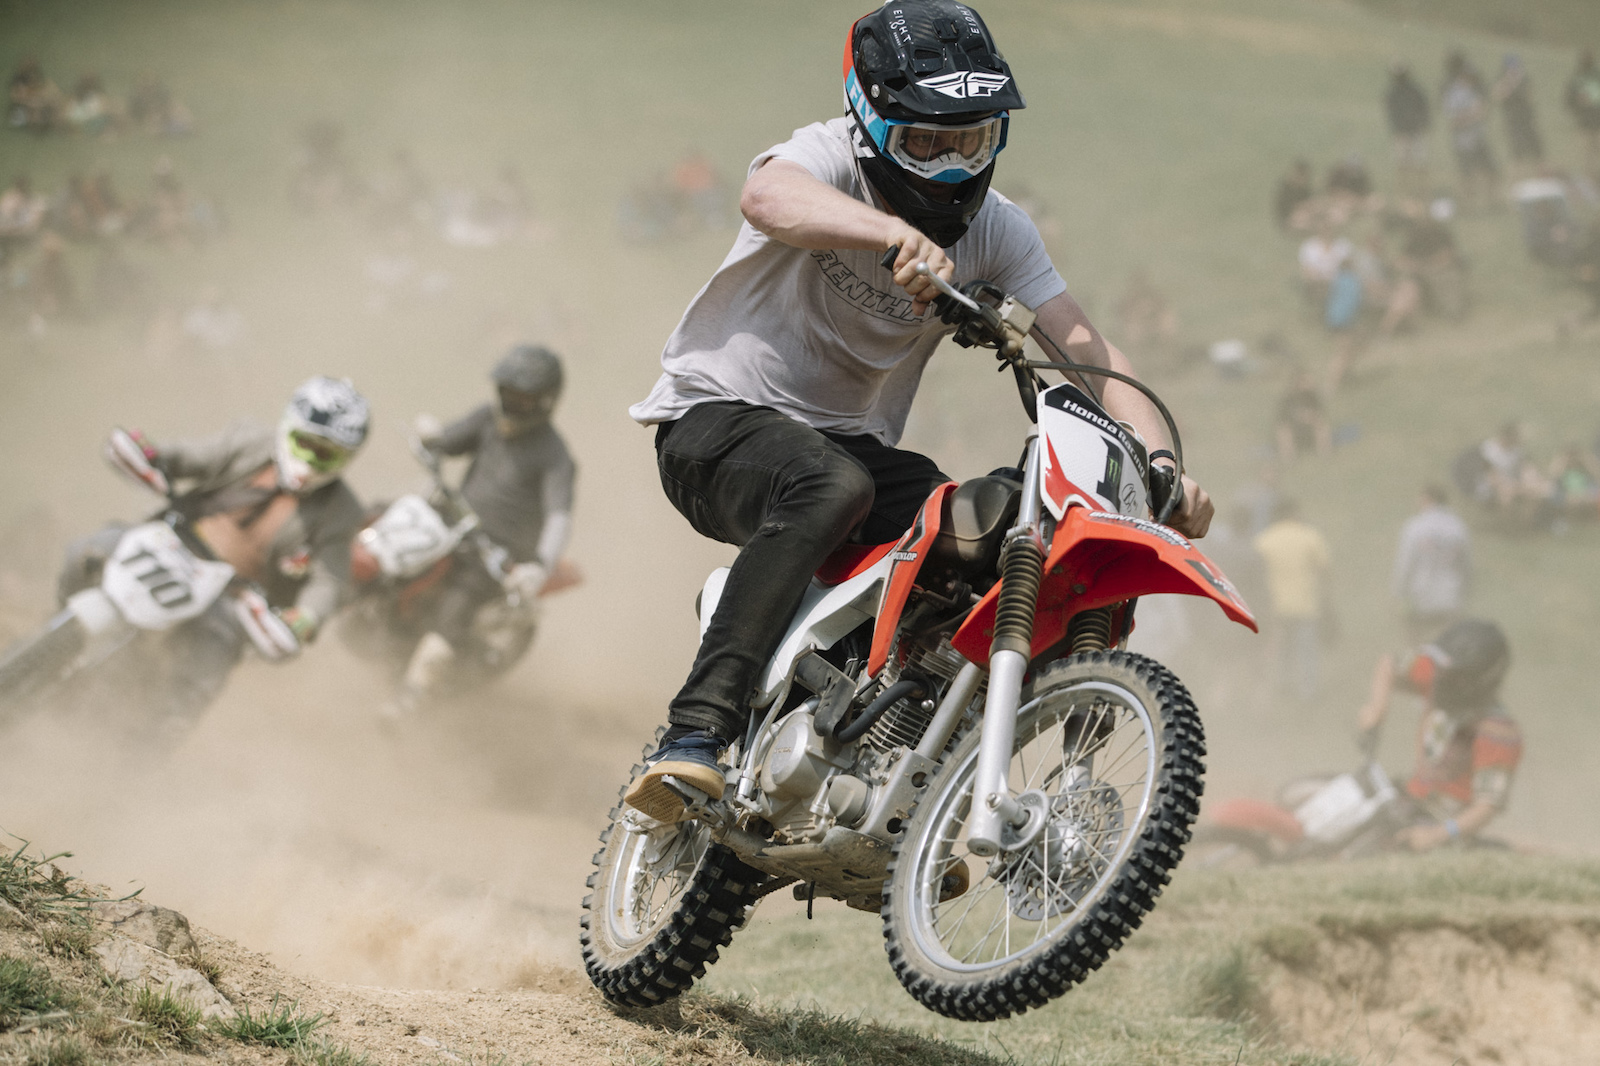 mini motocross at the Frew s Farm Jam 2020 Otapiri Gorge New Zealand